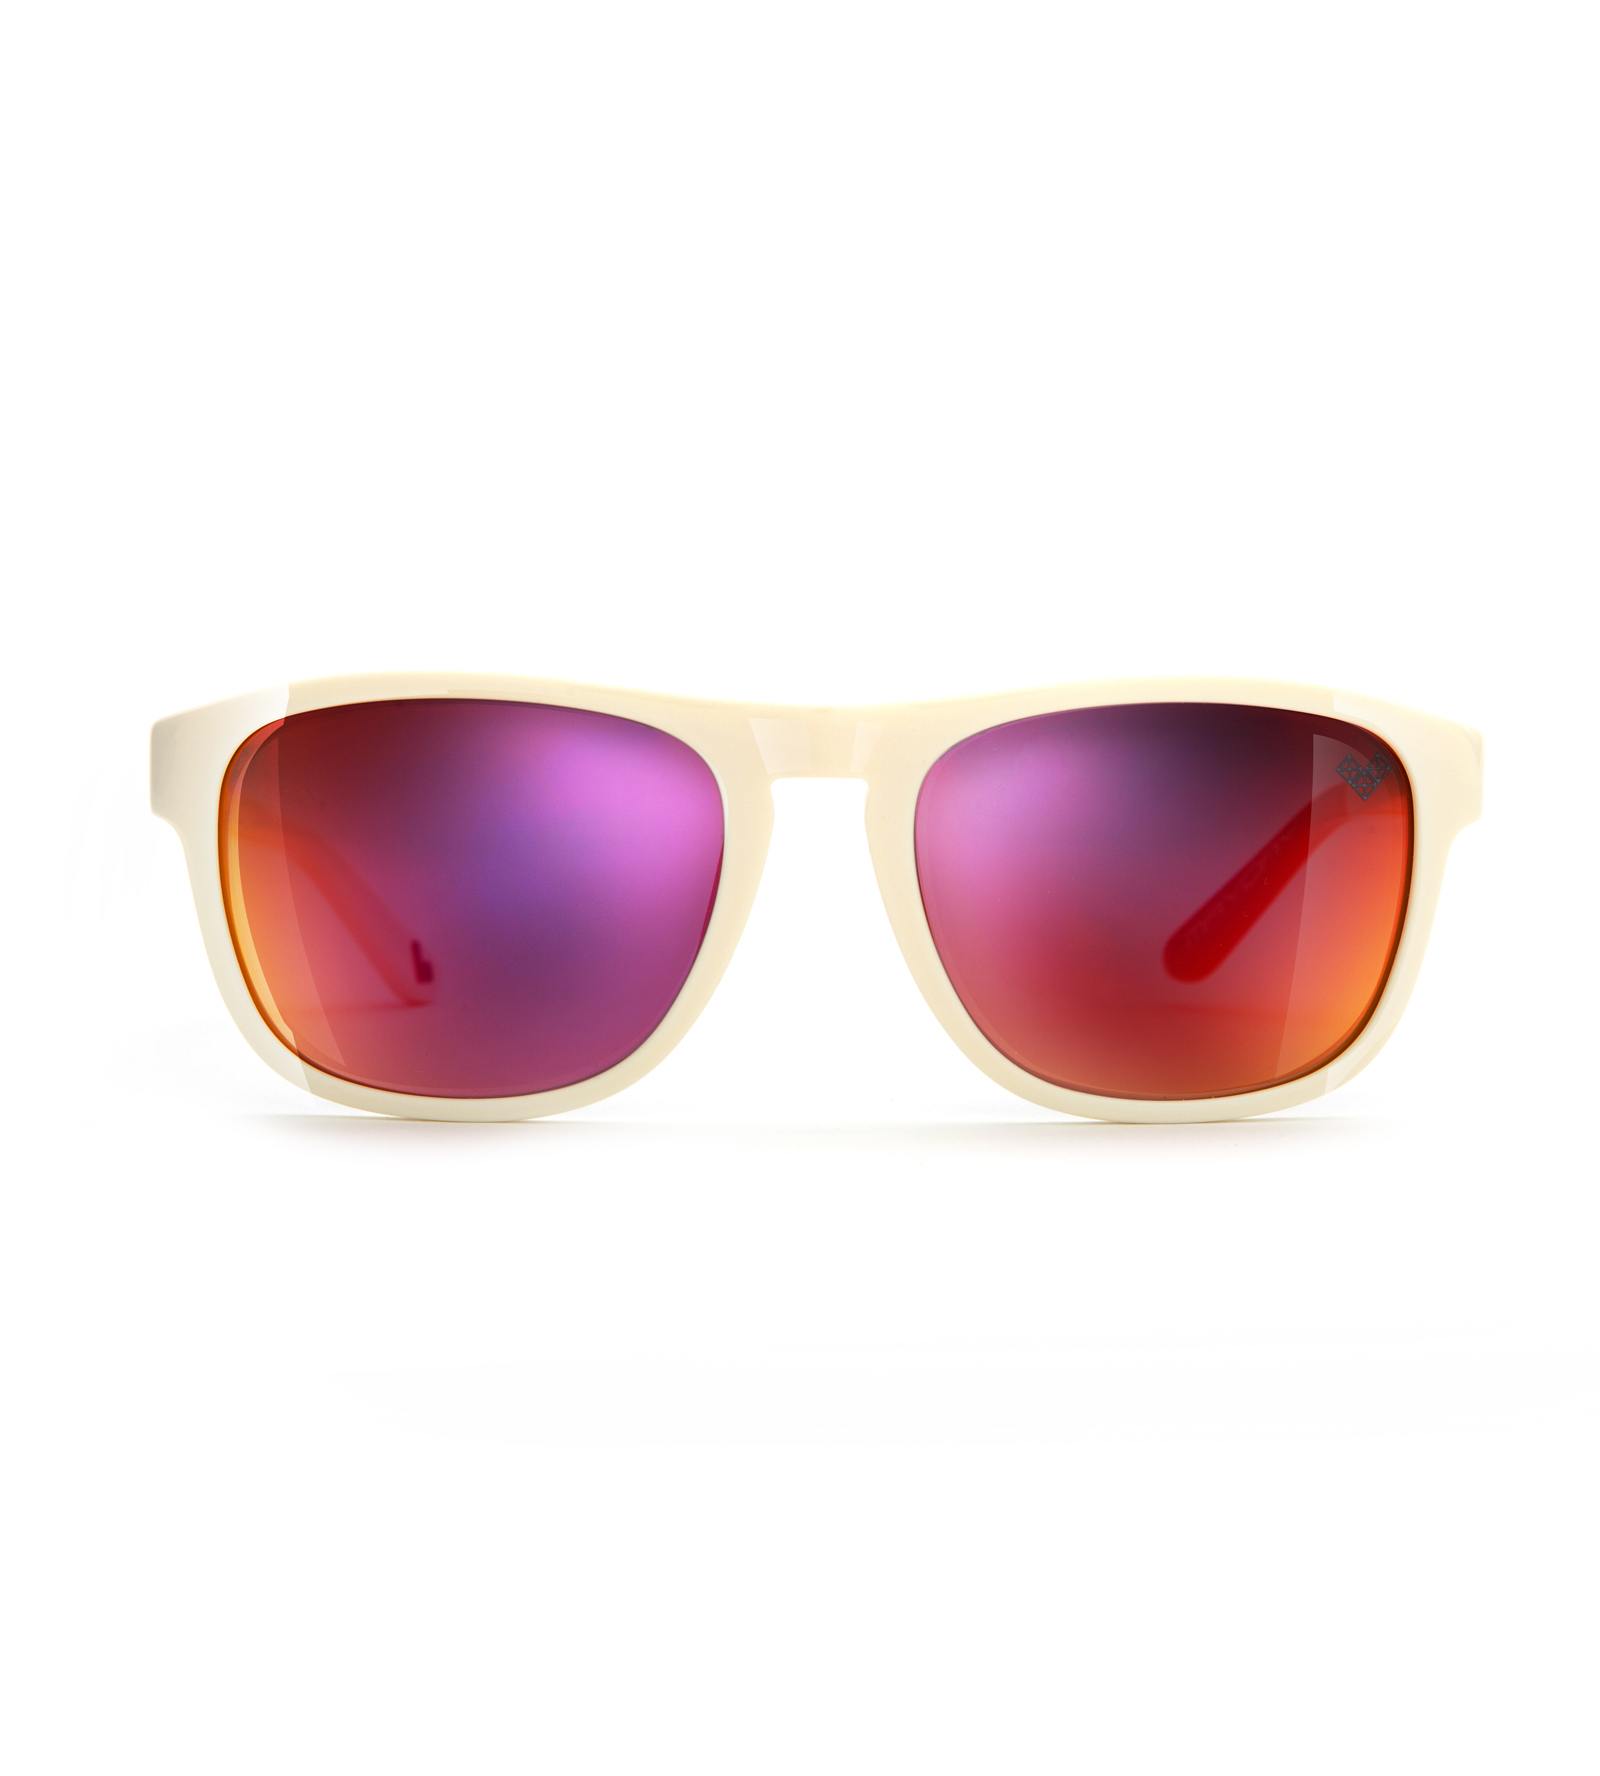 MAYDAY-Md1R with Red Mirror Coating Lenses